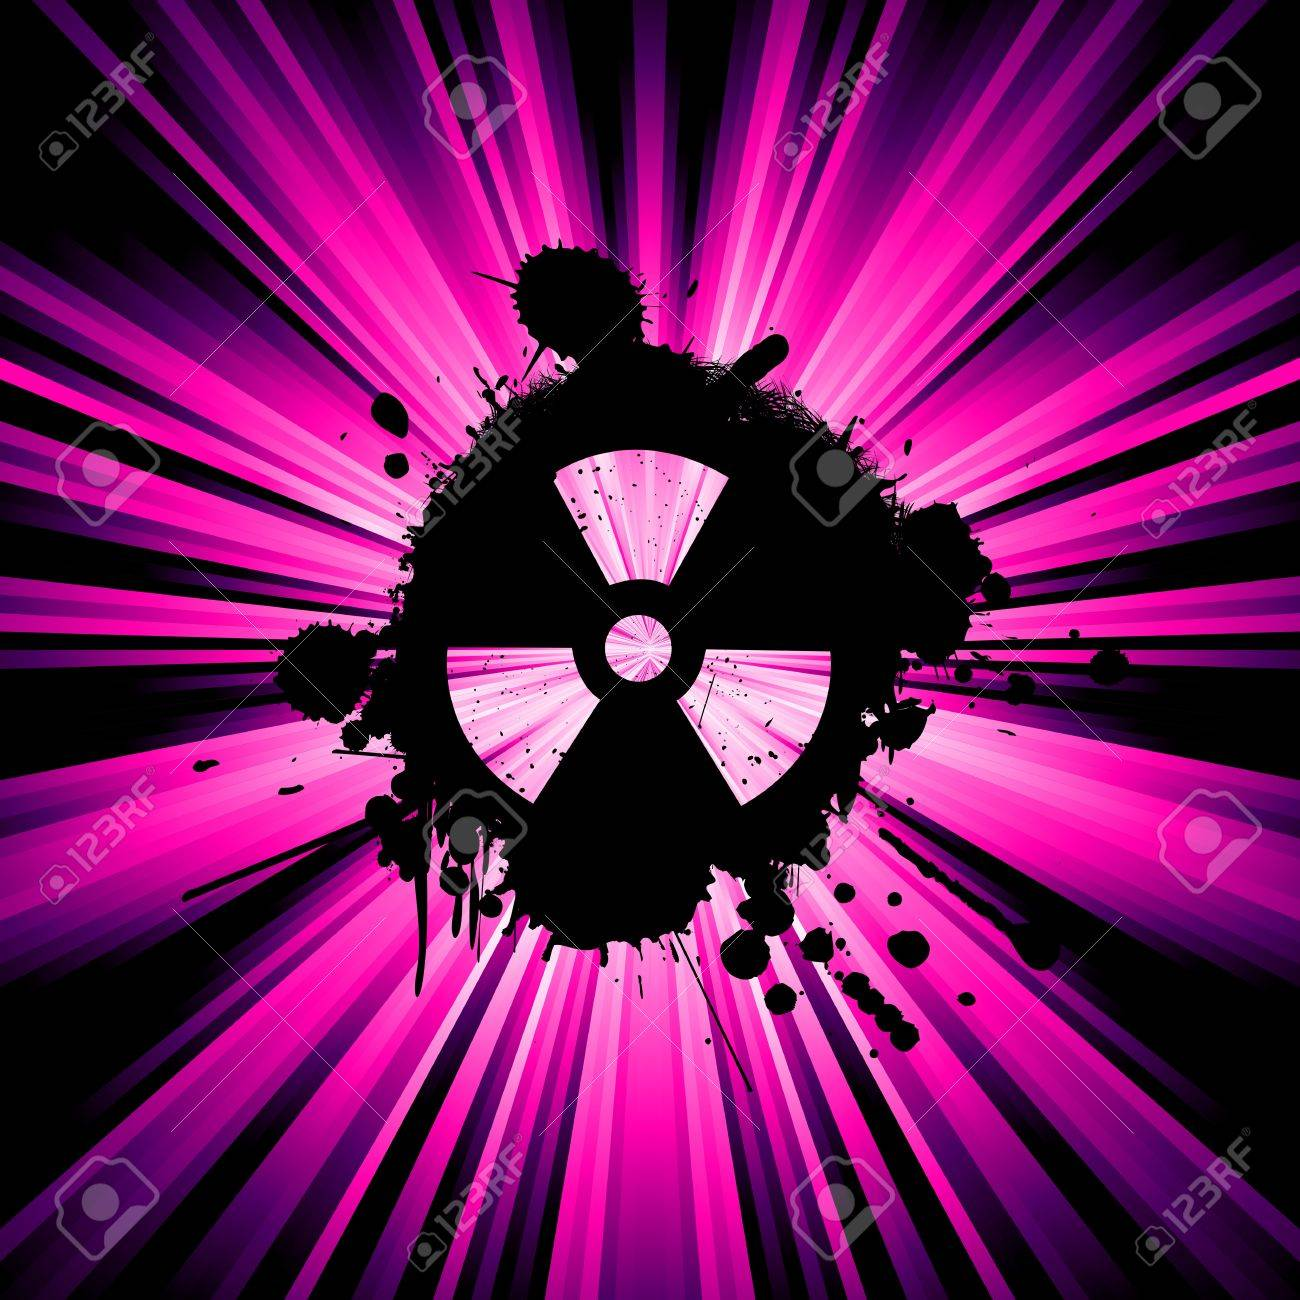 Background With Exploding Rays Nuclear Hazard Symbol Stock Photo